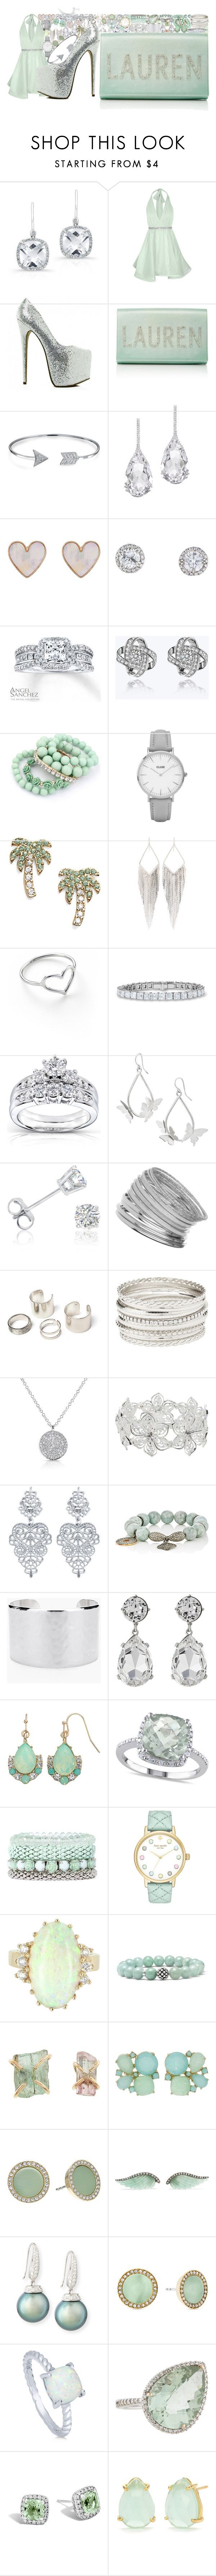 """""""Untitled #3670"""" by brooke-evans12 ❤ liked on Polyvore featuring Anne Sisteron, Alice + Olivia, Preciously, Bling Jewelry, Plukka, New Look, Angel Sanchez, Topshop, Kate Spade and Jules Smith"""